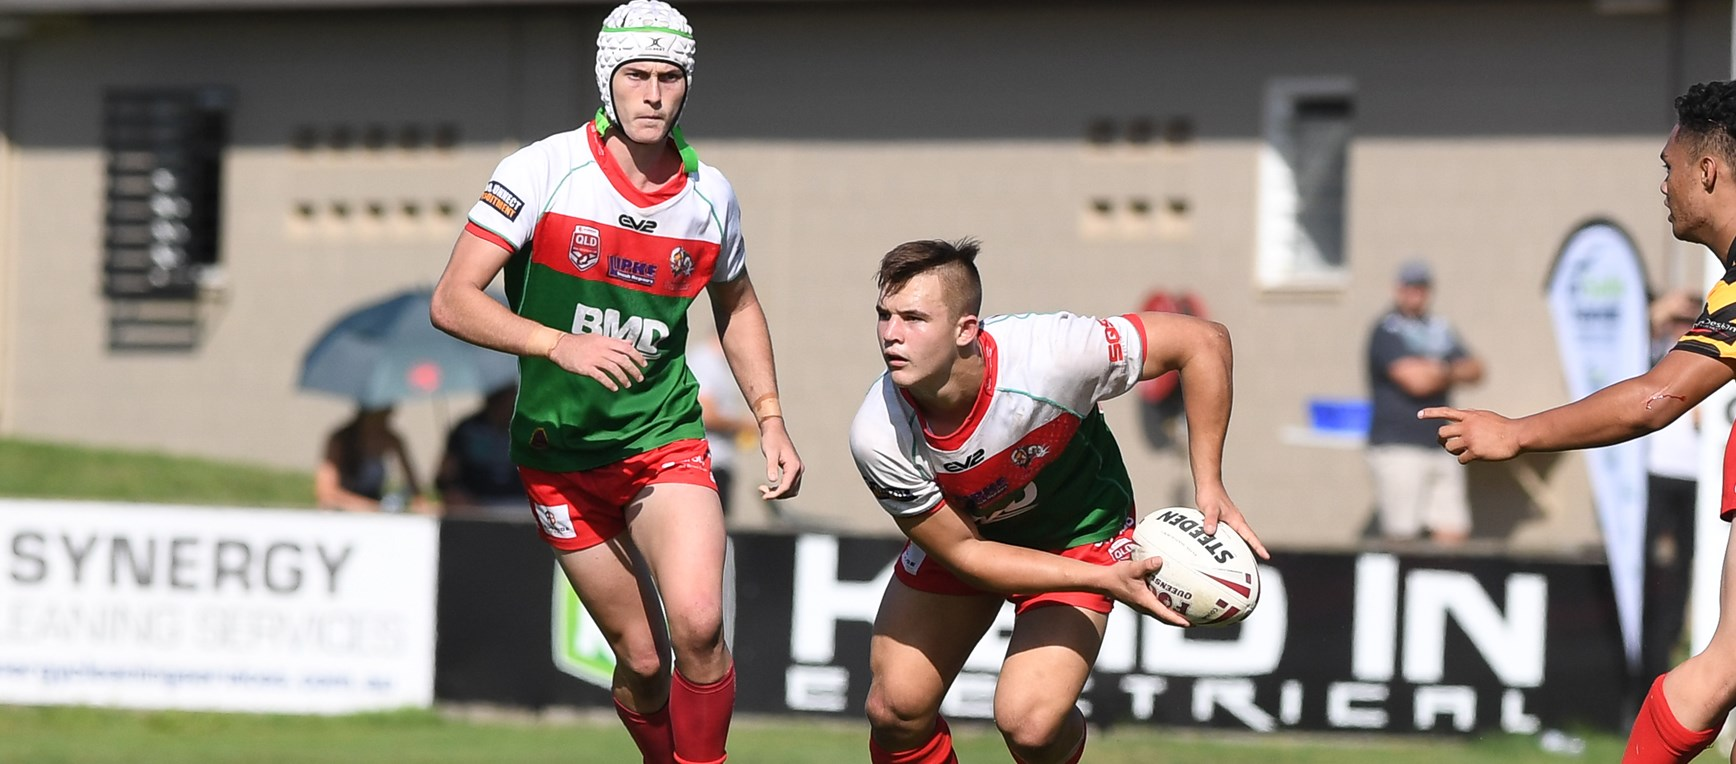 In pictures: Wynnum Manly too strong for Falcons